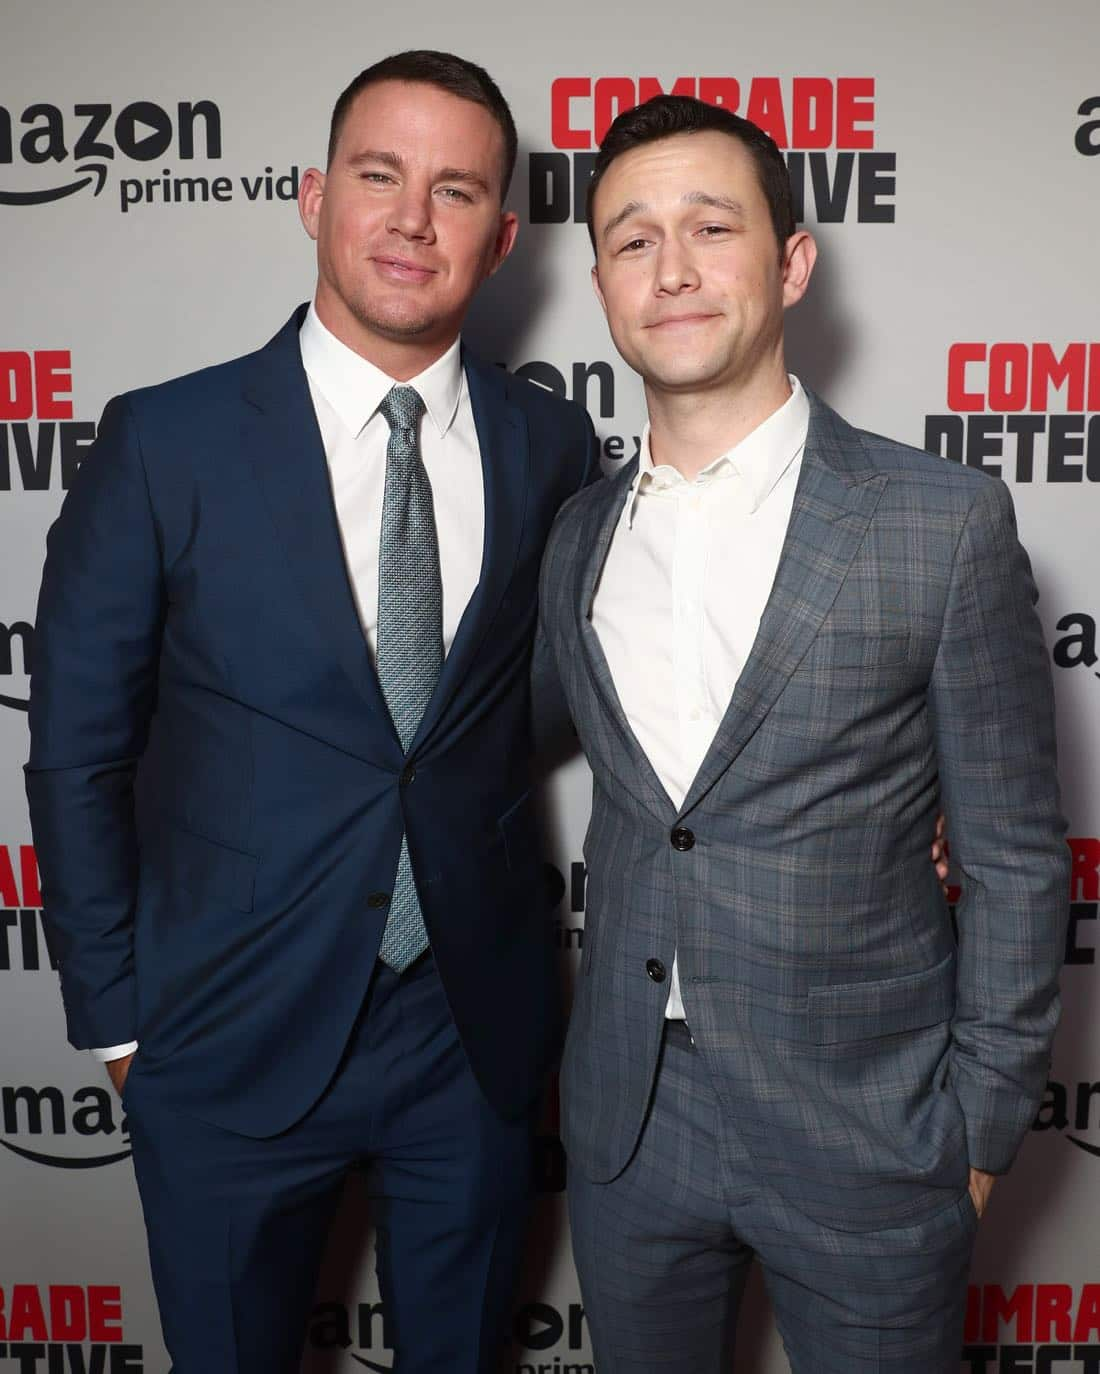 "LOS ANGELES, CA - AUGUST 03: Channing Tatum and Joseph Gordon-Levitt attend the Amazon Prime Video Premiere Of Original Comedy Series ""Comrade Detective"" In Los Angeles on August 3, 2017 in Los Angeles, California. (Photo by Todd Williamson/Getty Images for Amazon Studios)"